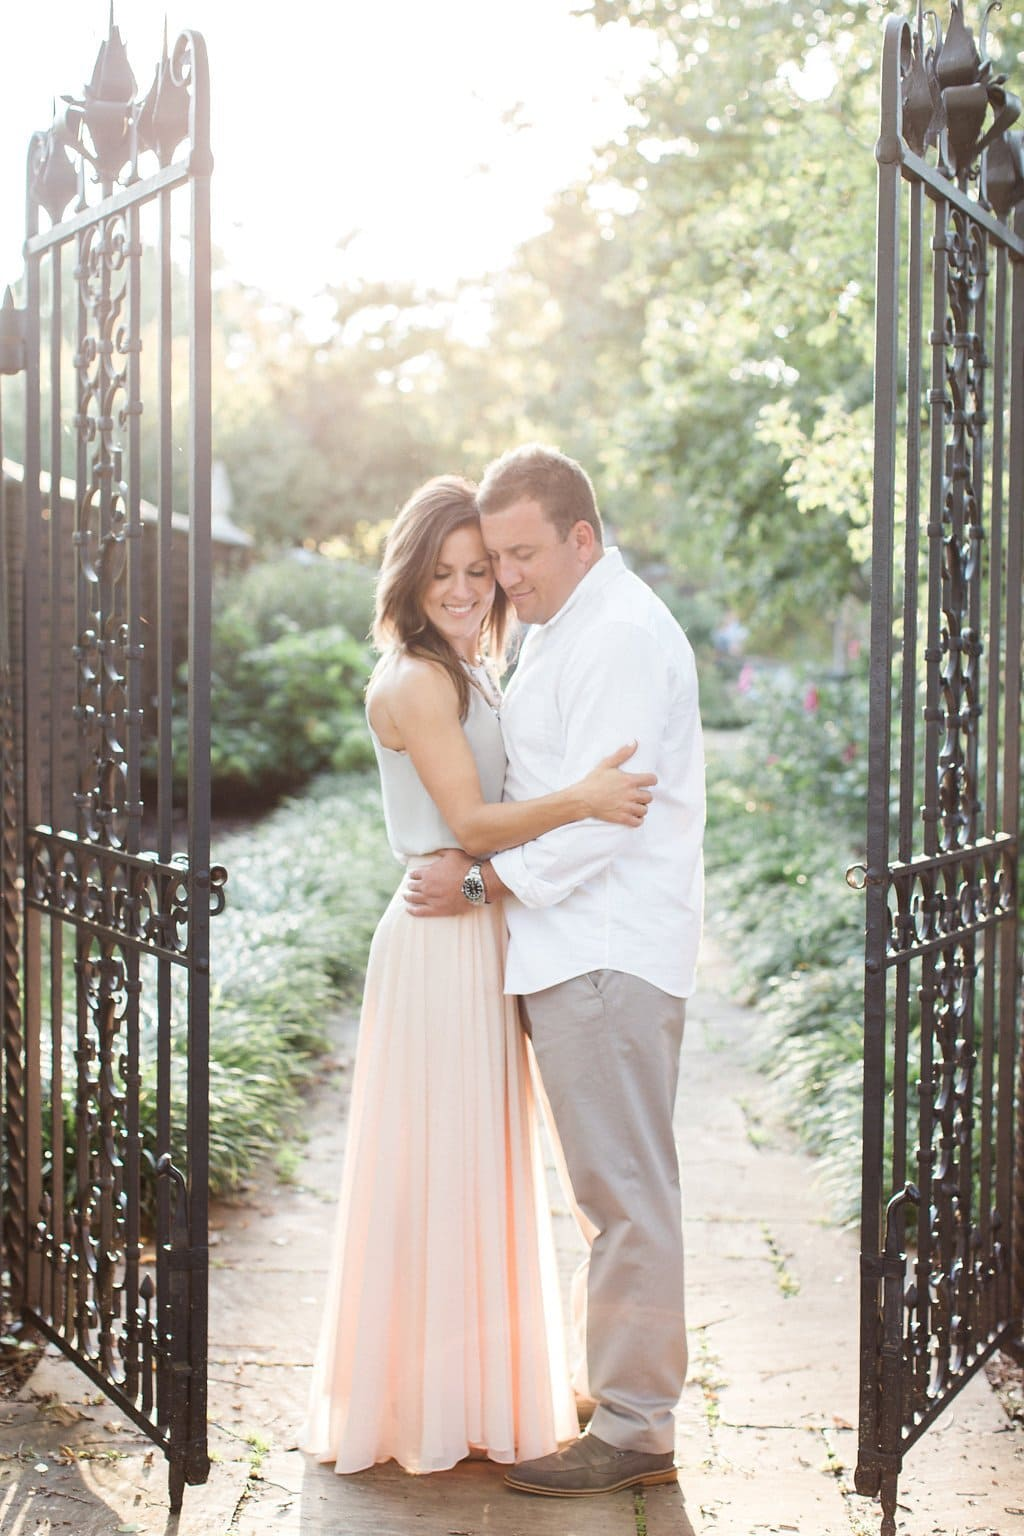 Bride and groom standing together embracing in between wrought iron gates